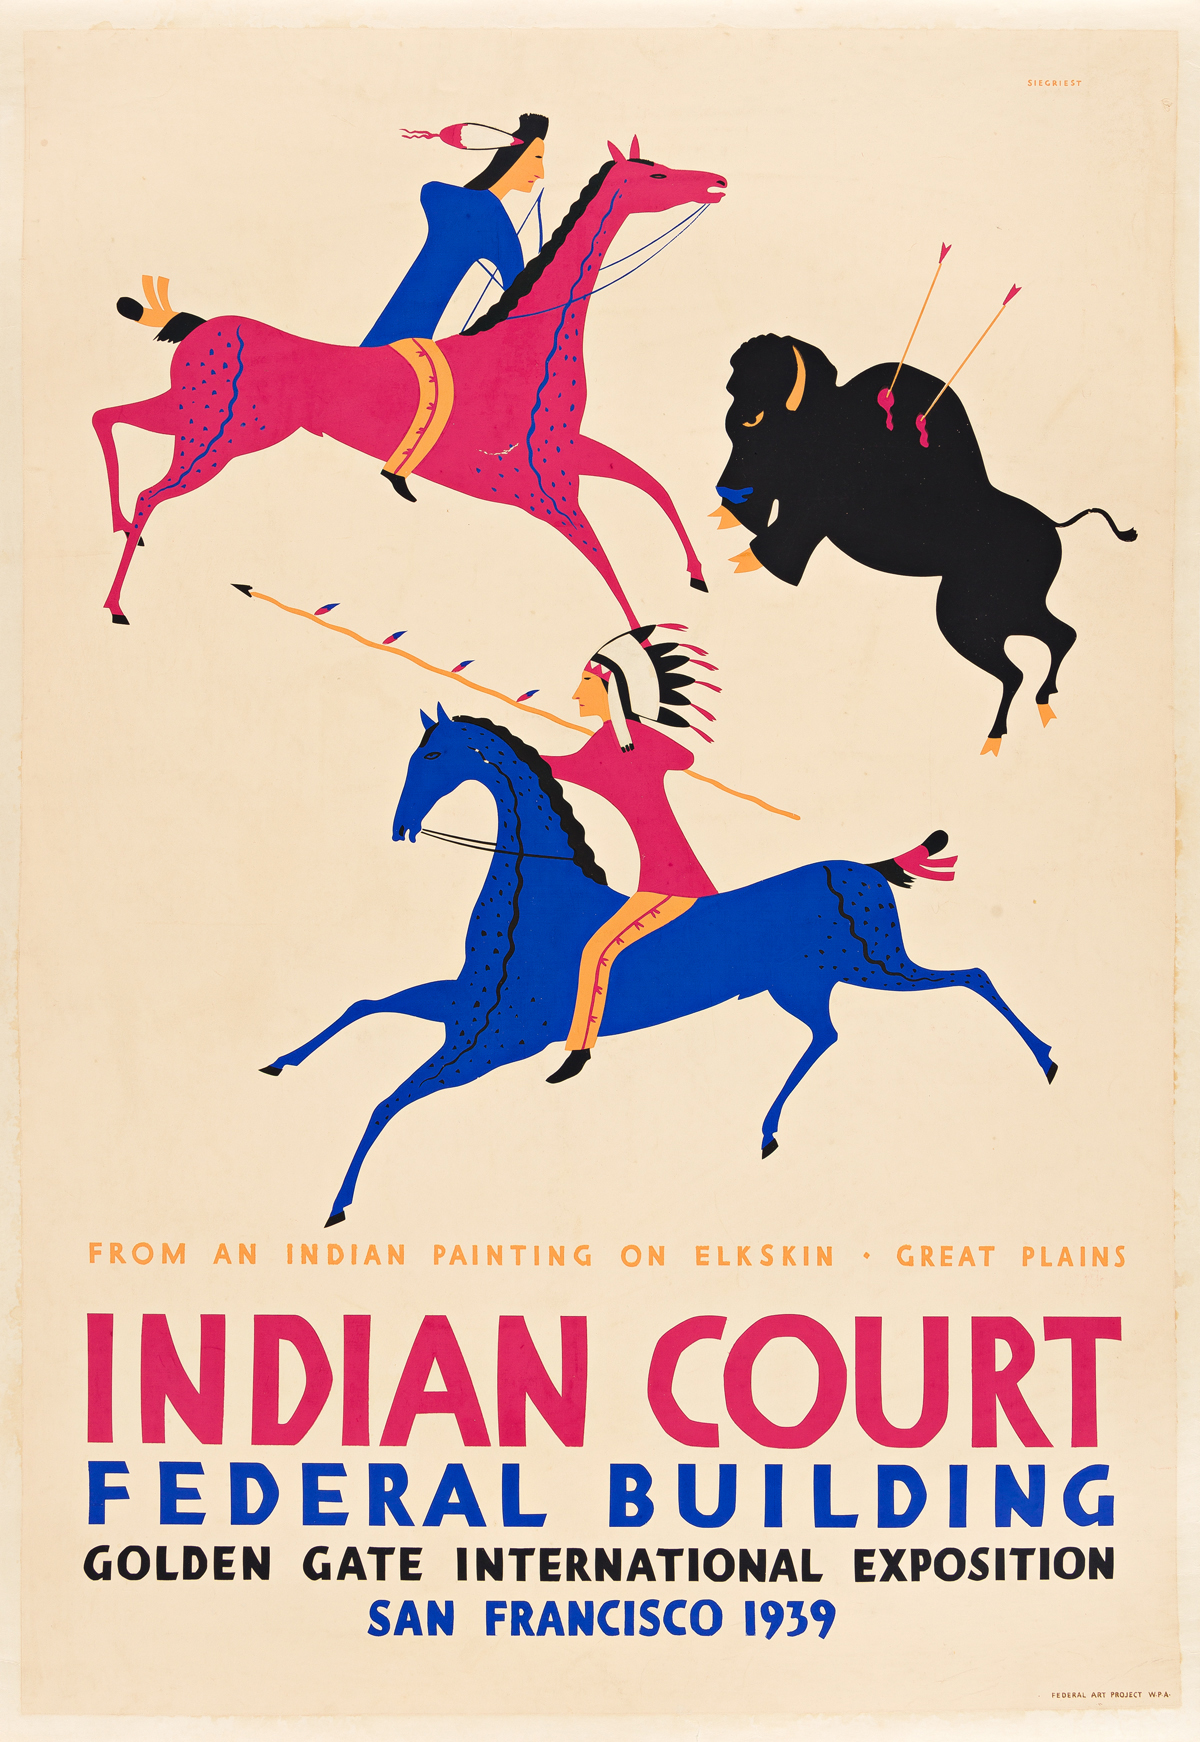 LOUIS B. SIEGRIEST (1899-1989) Indian Court Federal Building / From An Indian Painting On Elk Skin.